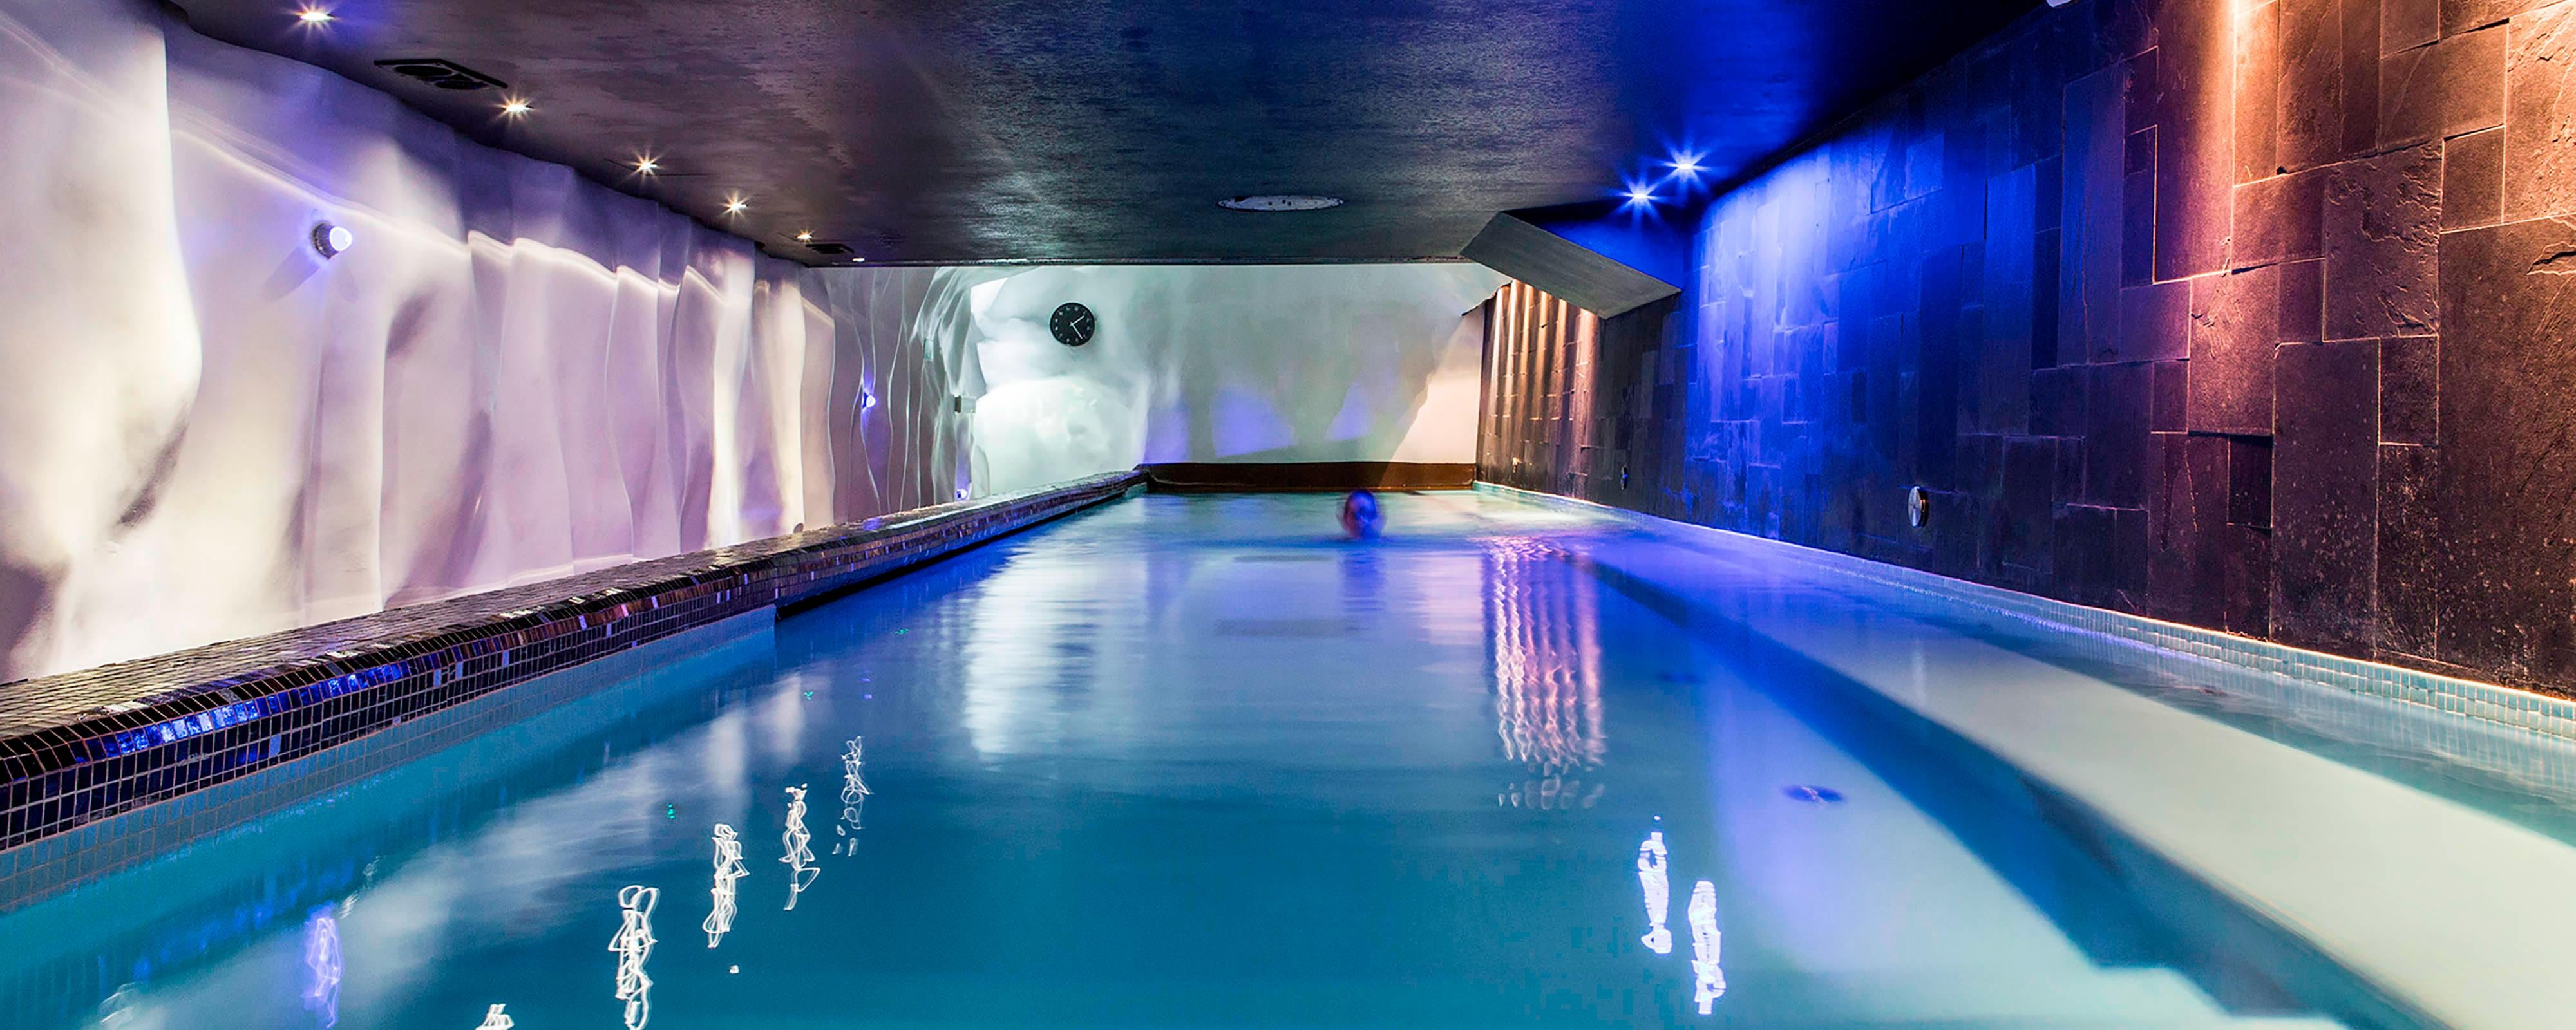 Budapest Hotel with Pool | New York Palace, The Dedica, Autograph